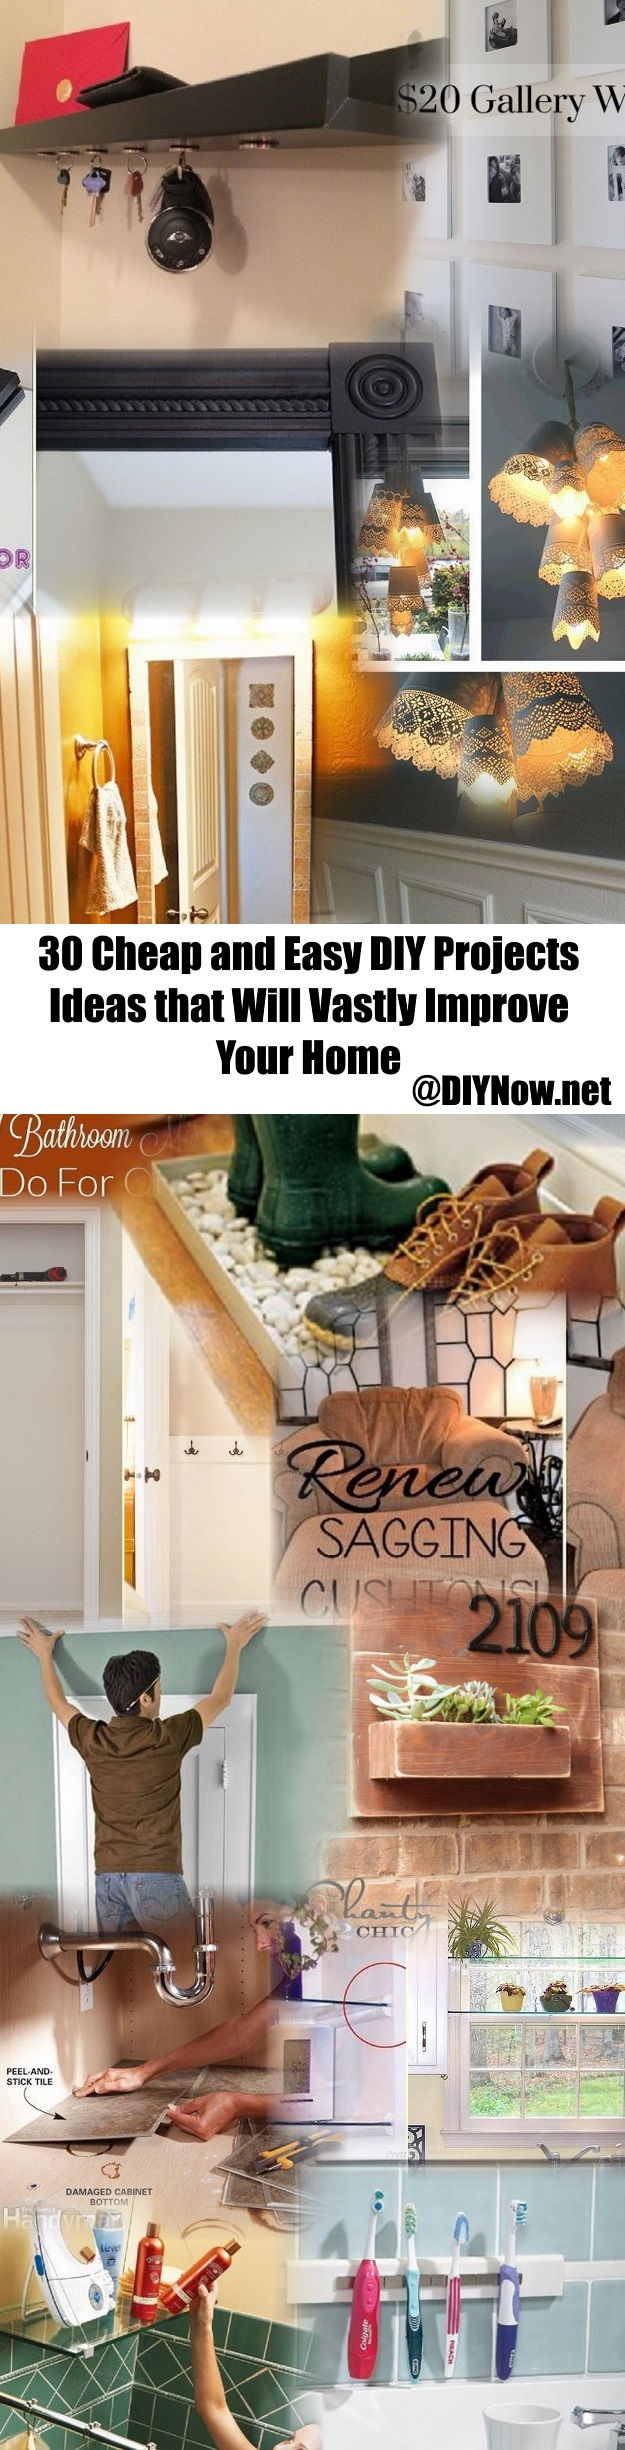 30 cheap and easy diy projects ideas that will vastly for Easy home improvement projects